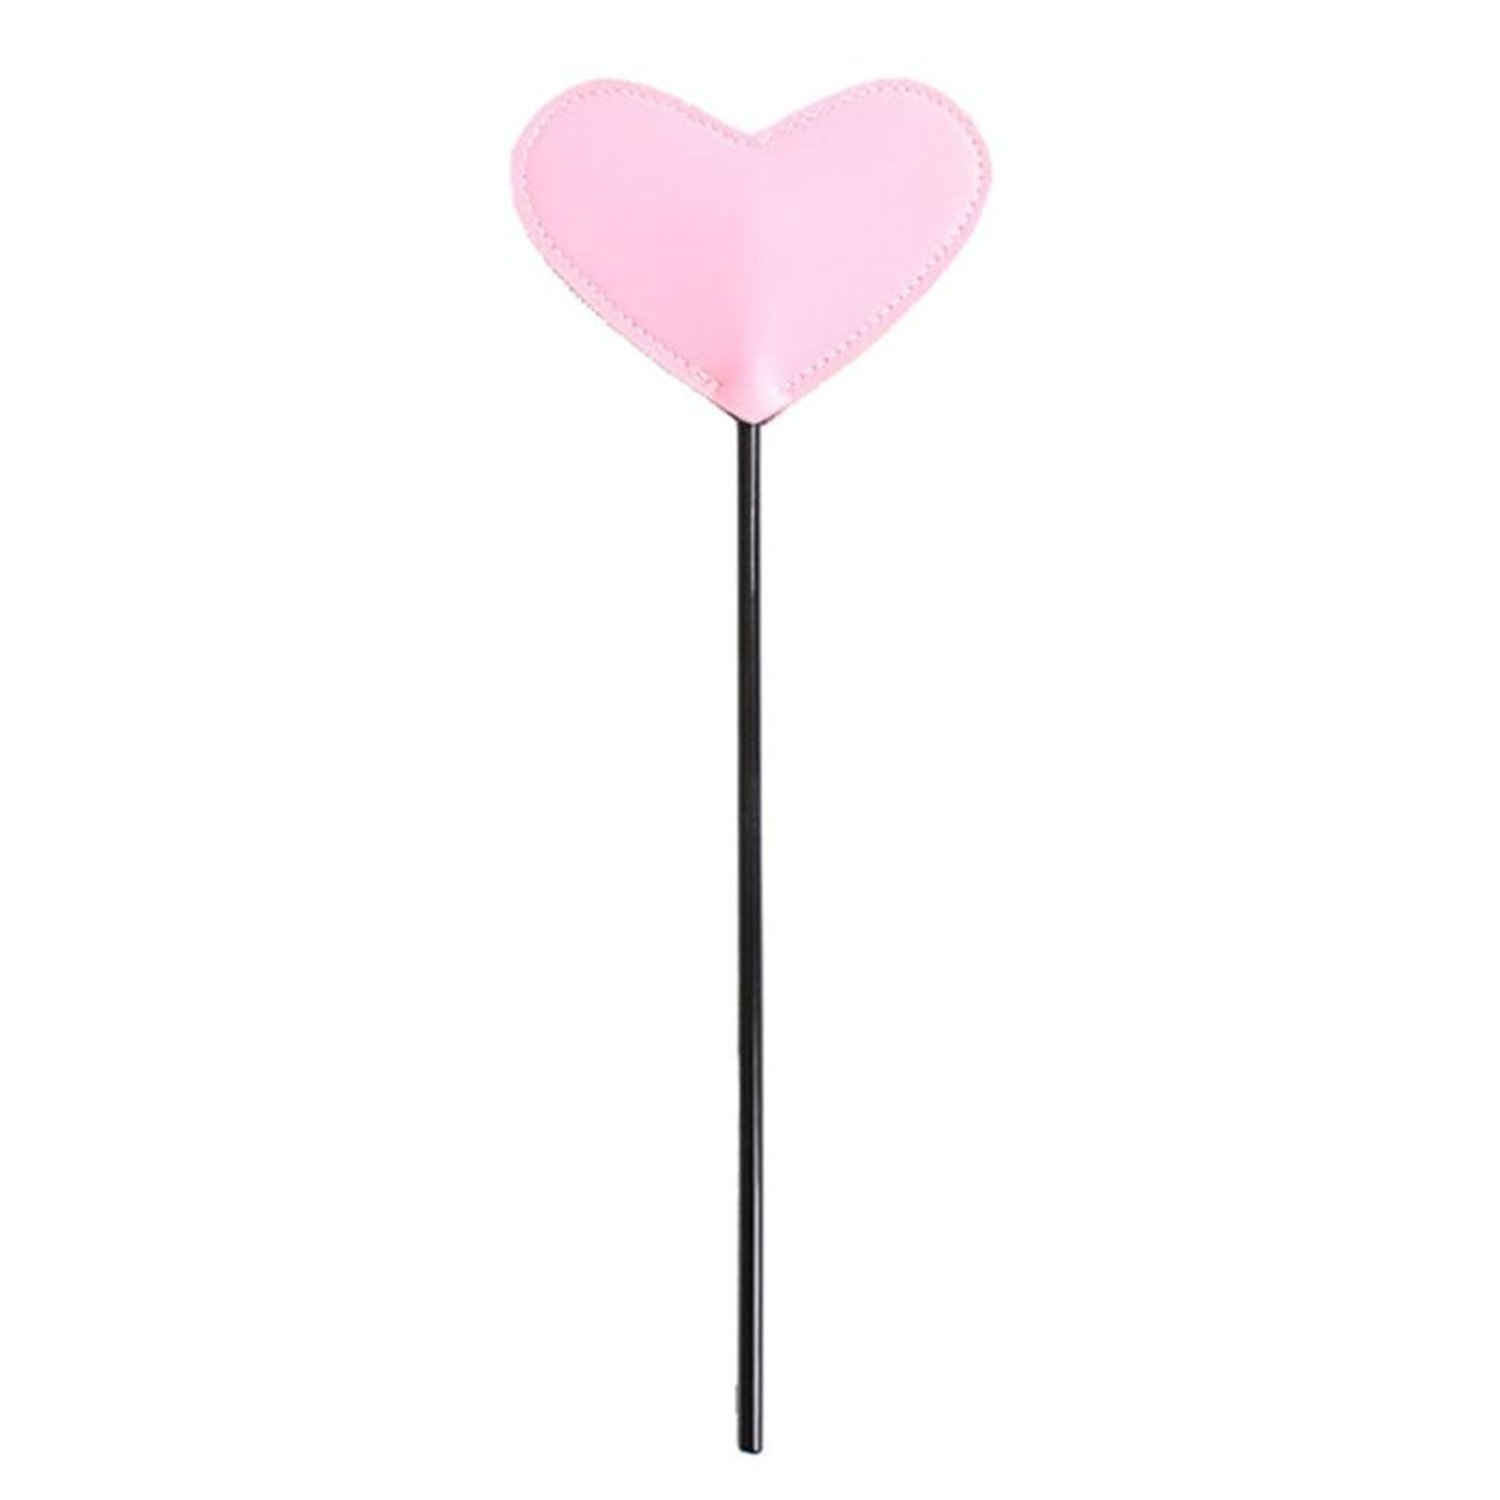 li dongc Hot Erotic Leather Paddle Sex Toys Flirting Adult Heart-Shaped Lovers Leather Rods Sex Toy for Couples May11